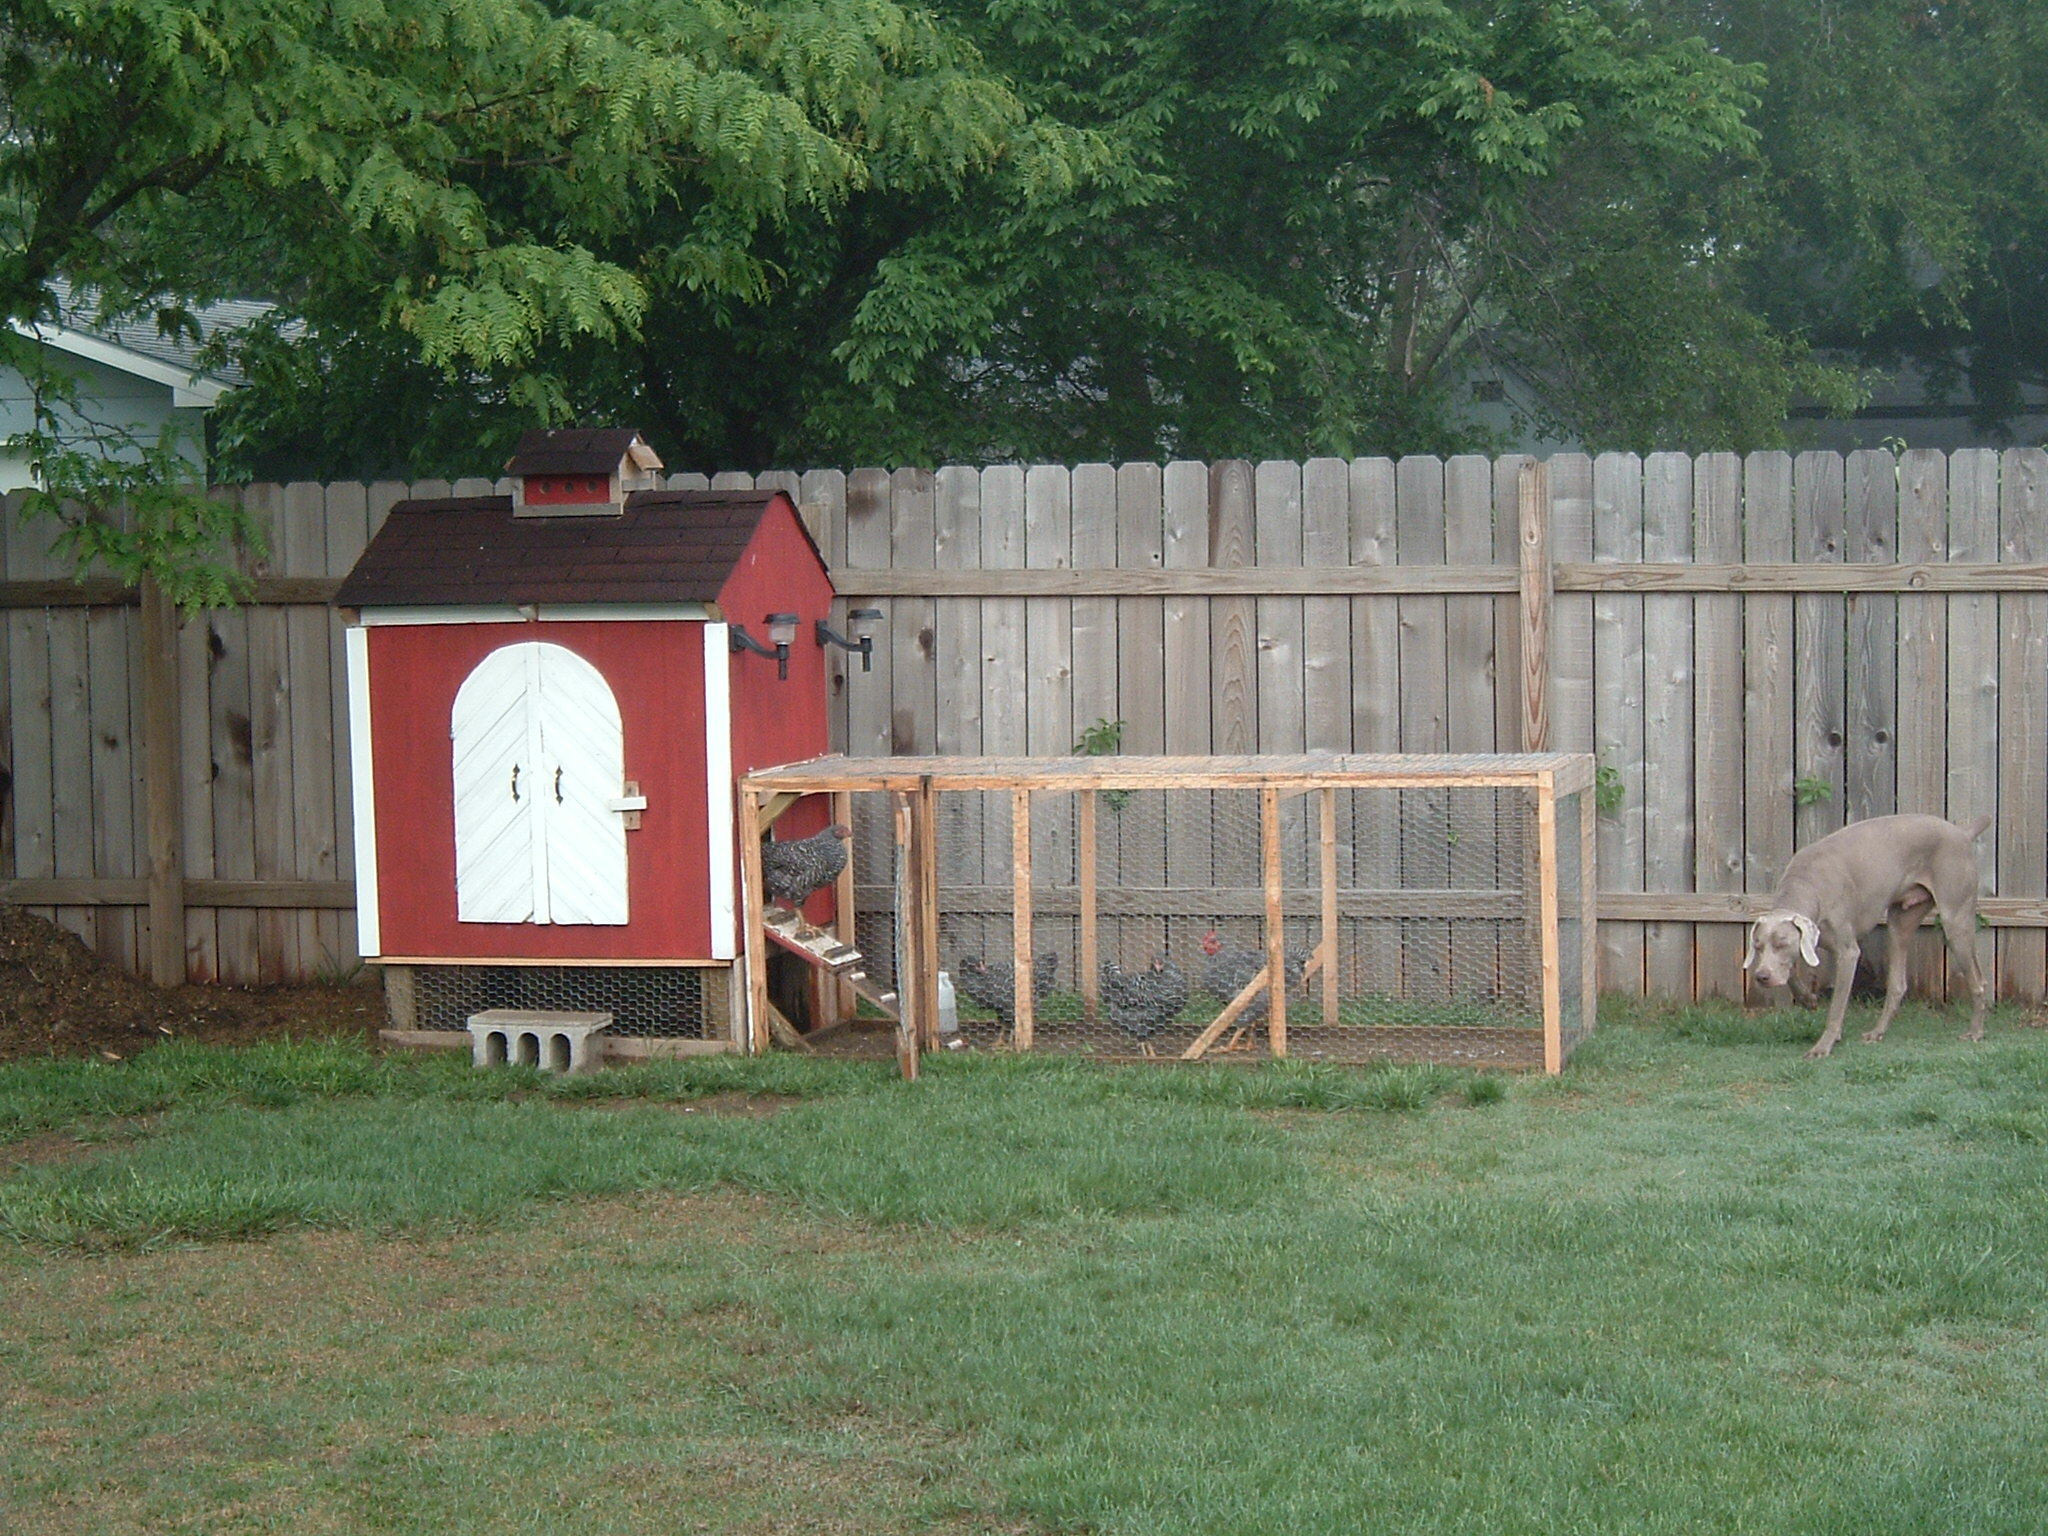 Best ideas about Backyard Chicken Coop . Save or Pin Backyard Chicken Coop 6 Steps with Now.